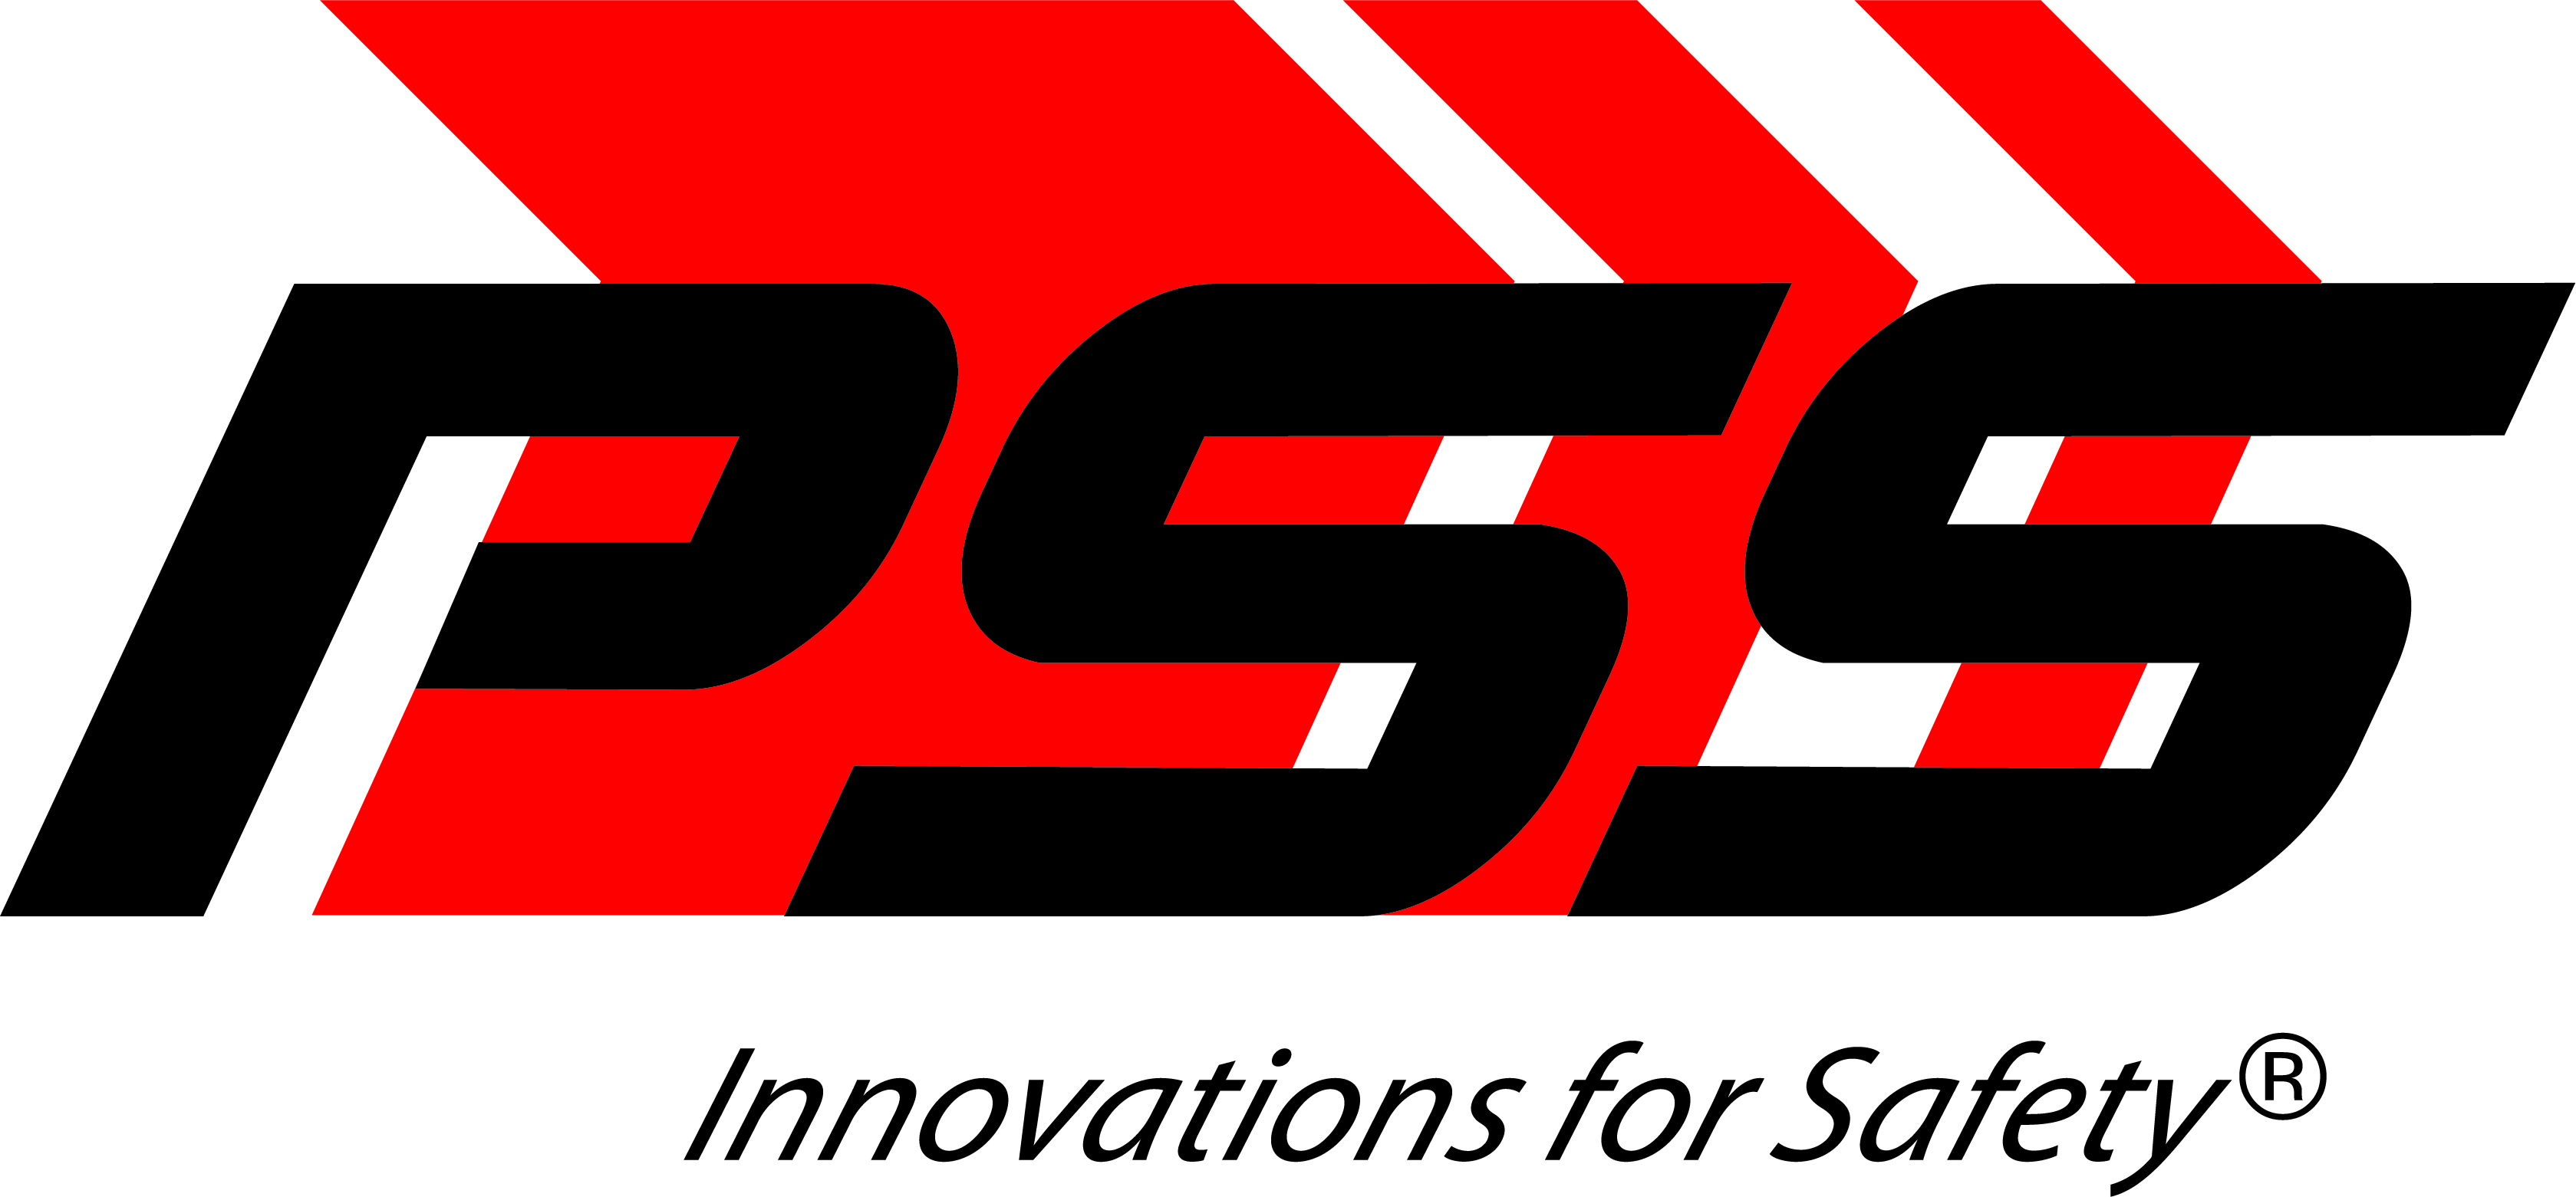 PSS Logo Black Red, Tag, R, July 2017